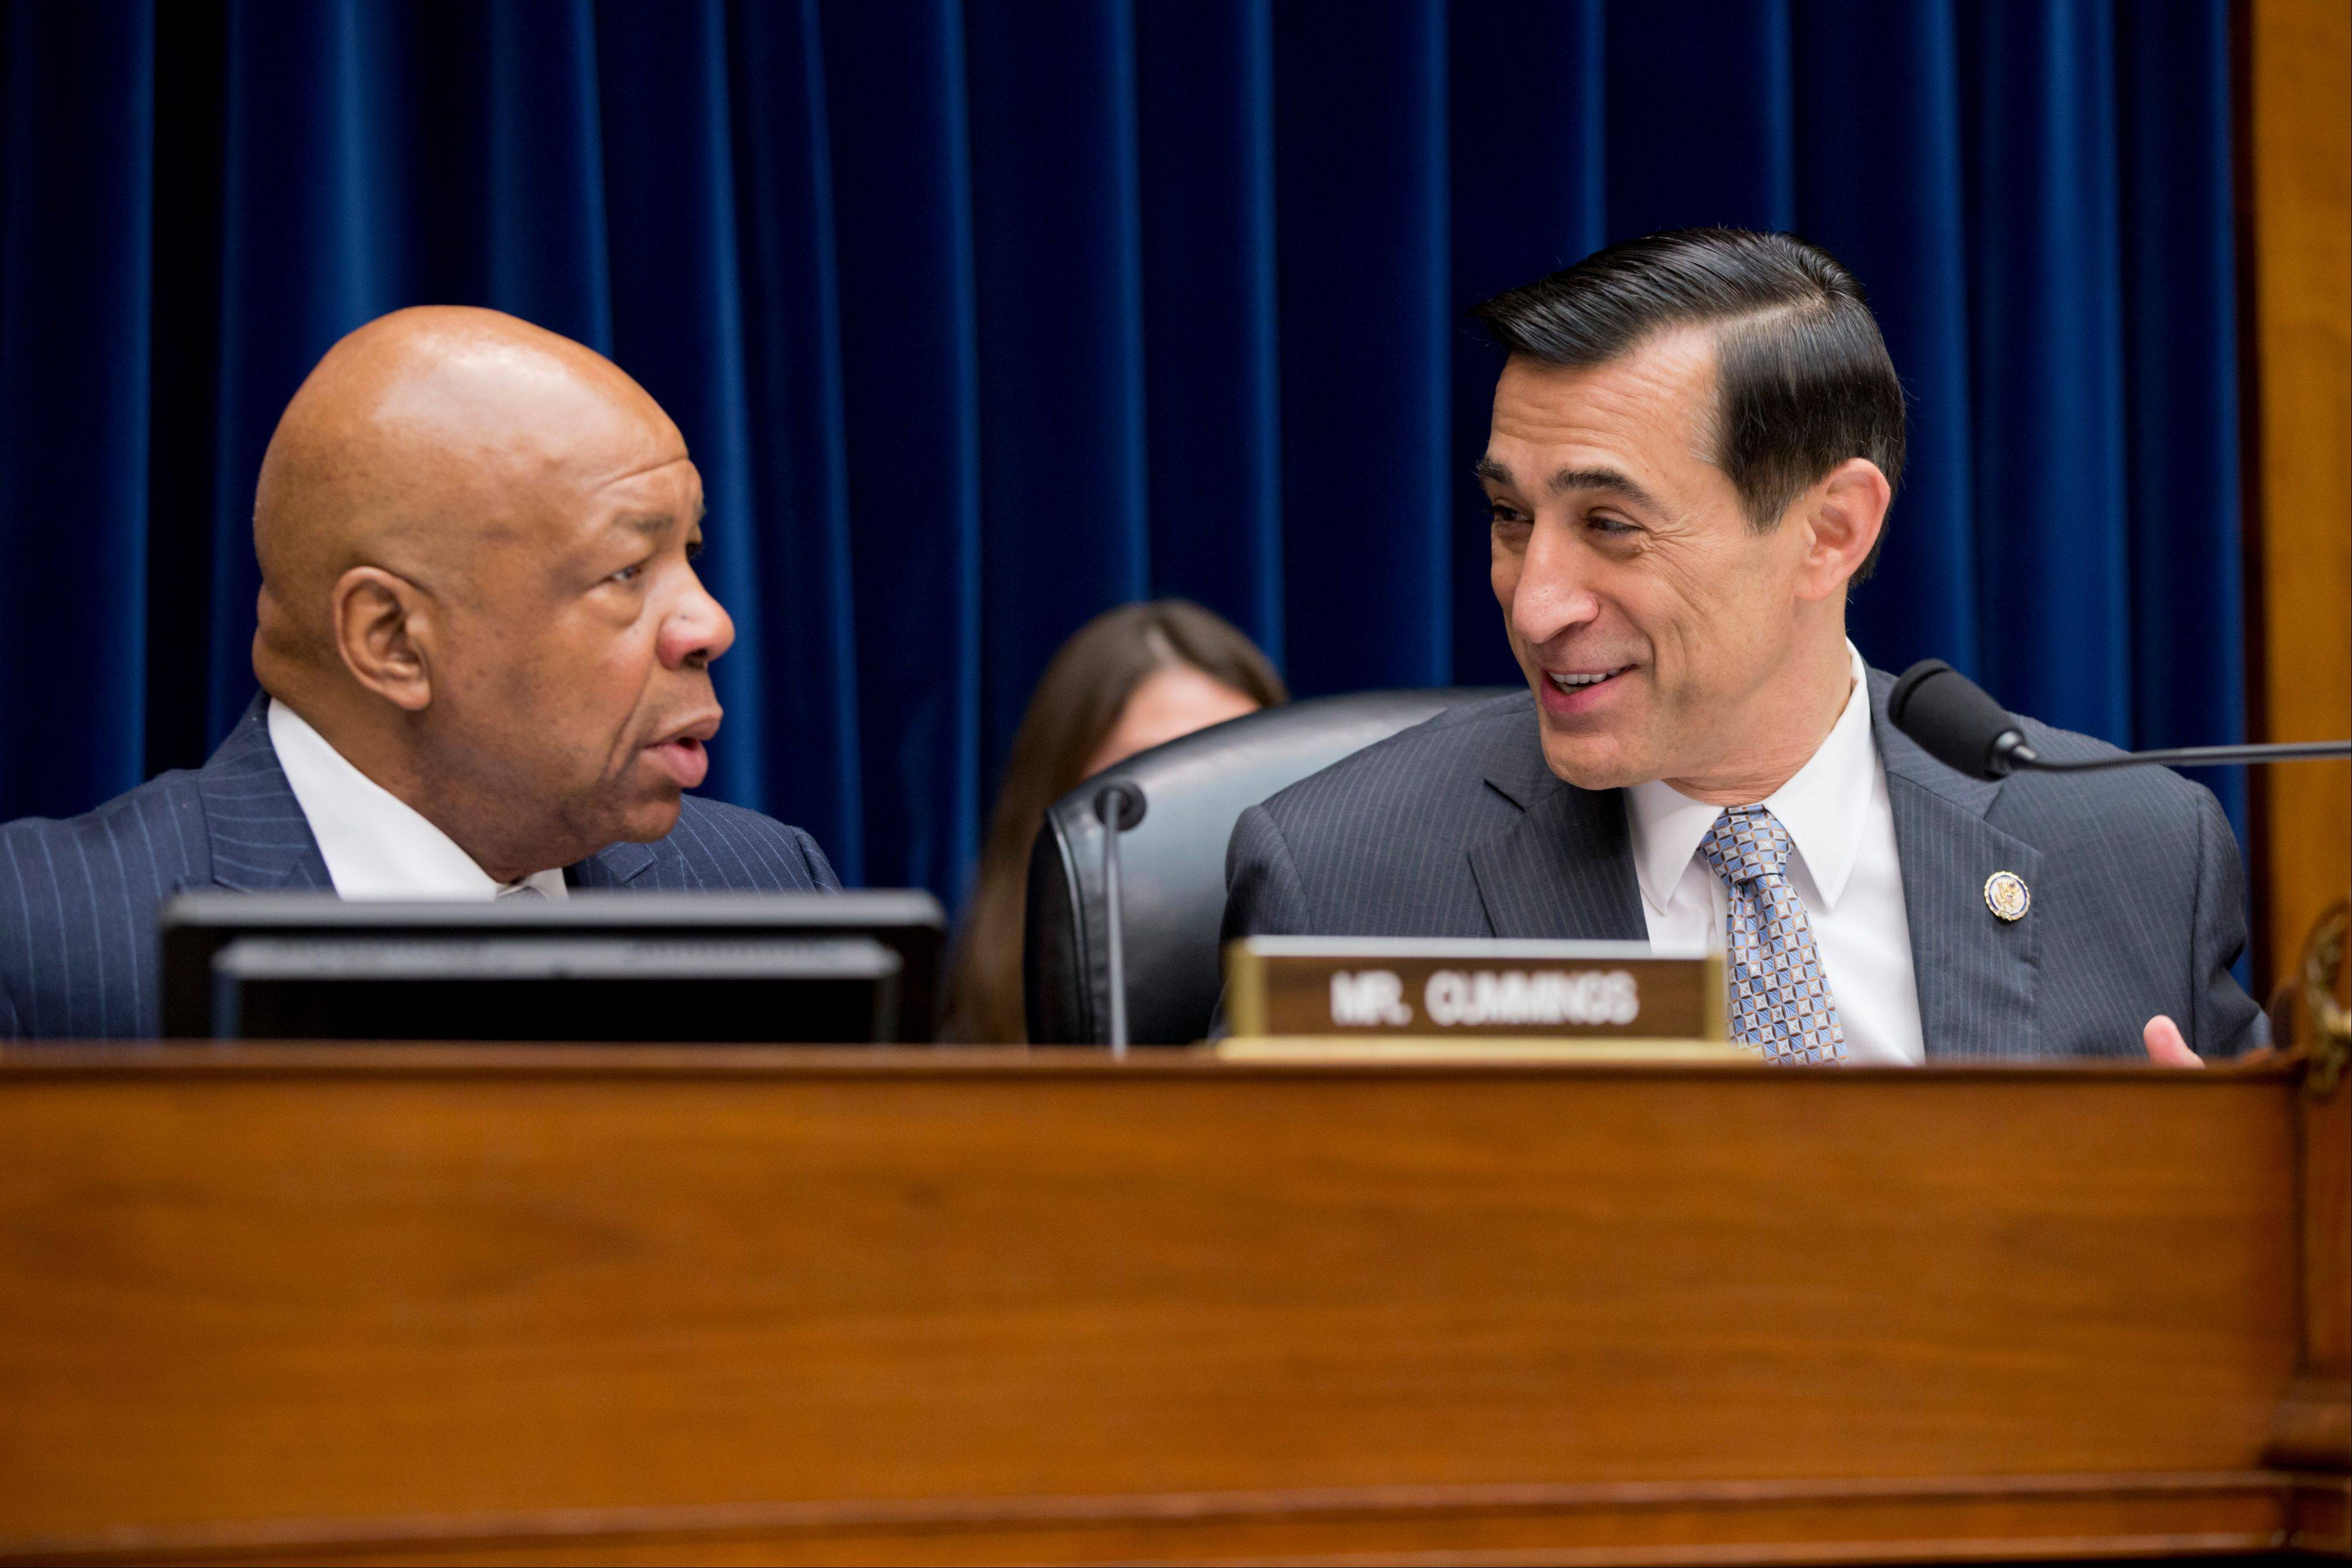 House Oversight and Government Reform Committee Chairman Rep. Darrell Issa, R-Calif., right, confers with the committee�s ranking Democrat, Rep. Elijah Cummings, D-Md., on Capitol Hill in Washington, before the start of the committee�s hearing on the implementation of the Affordable Care Act�s HealthCare.gov website.